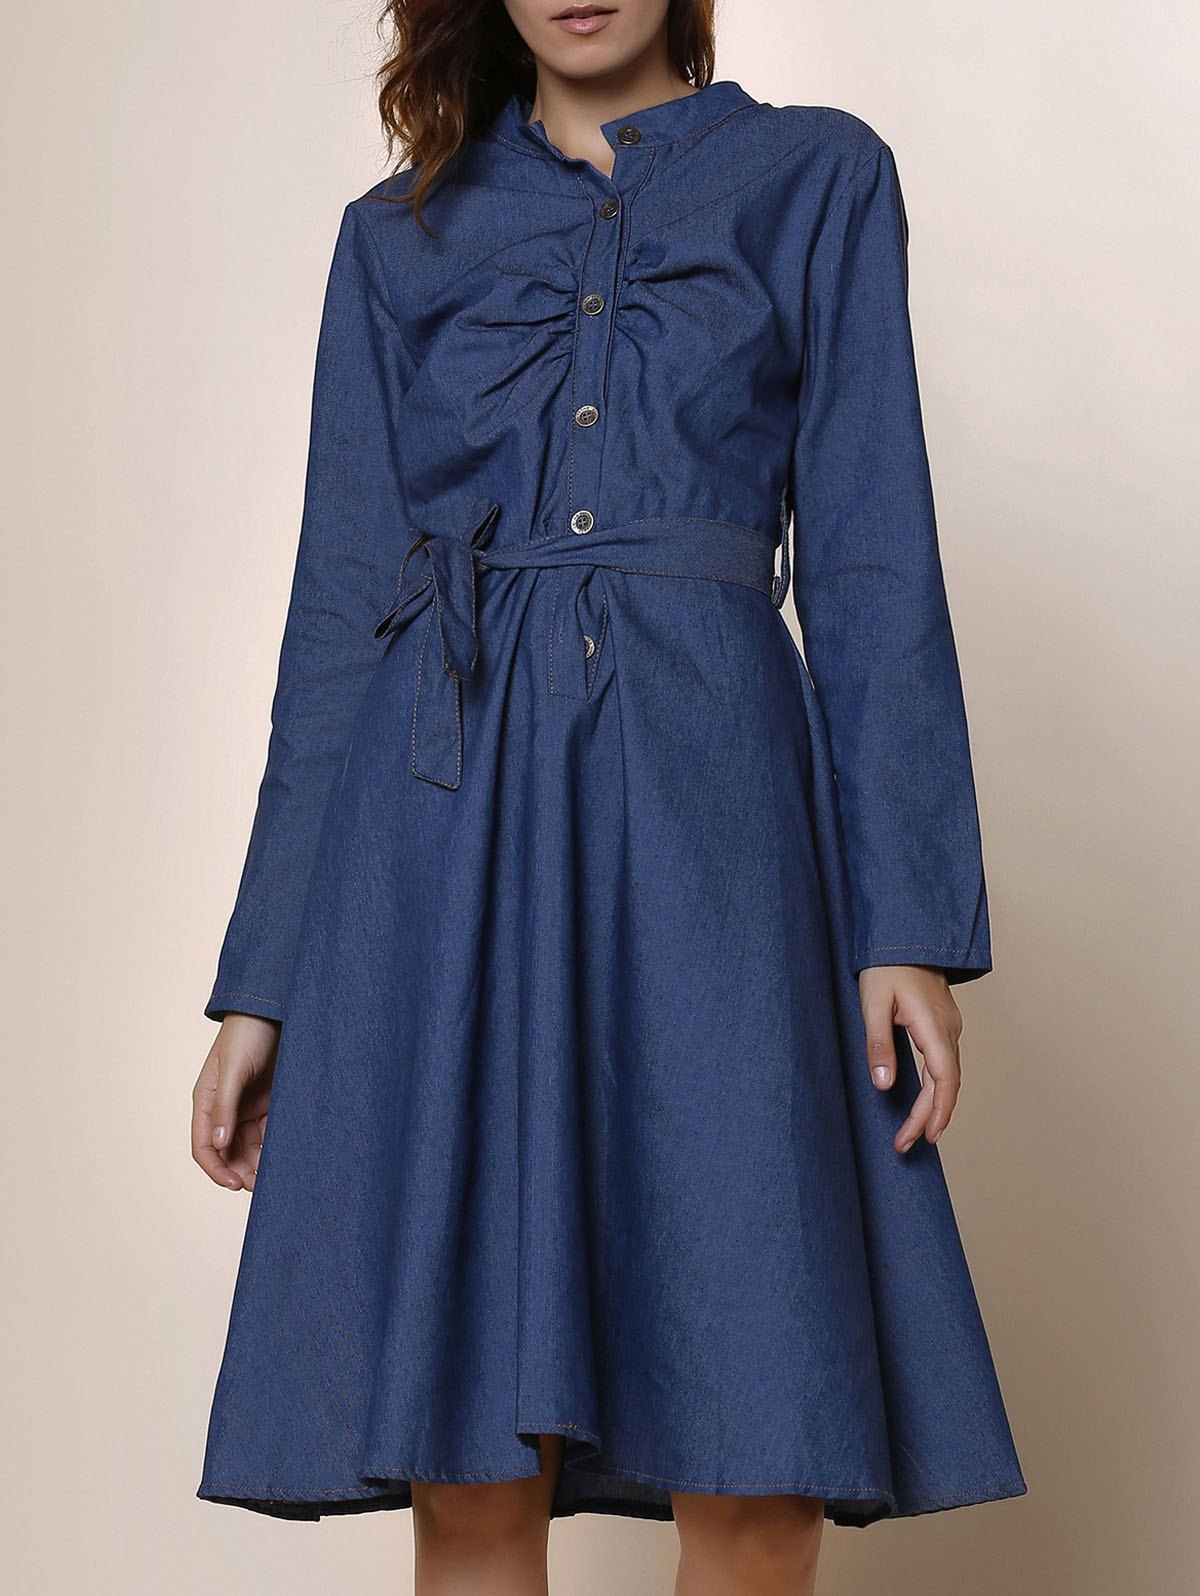 Stylish Long Sleeve Stand-Up Collar Button Design Denim Women's Dress - DEEP BLUE S